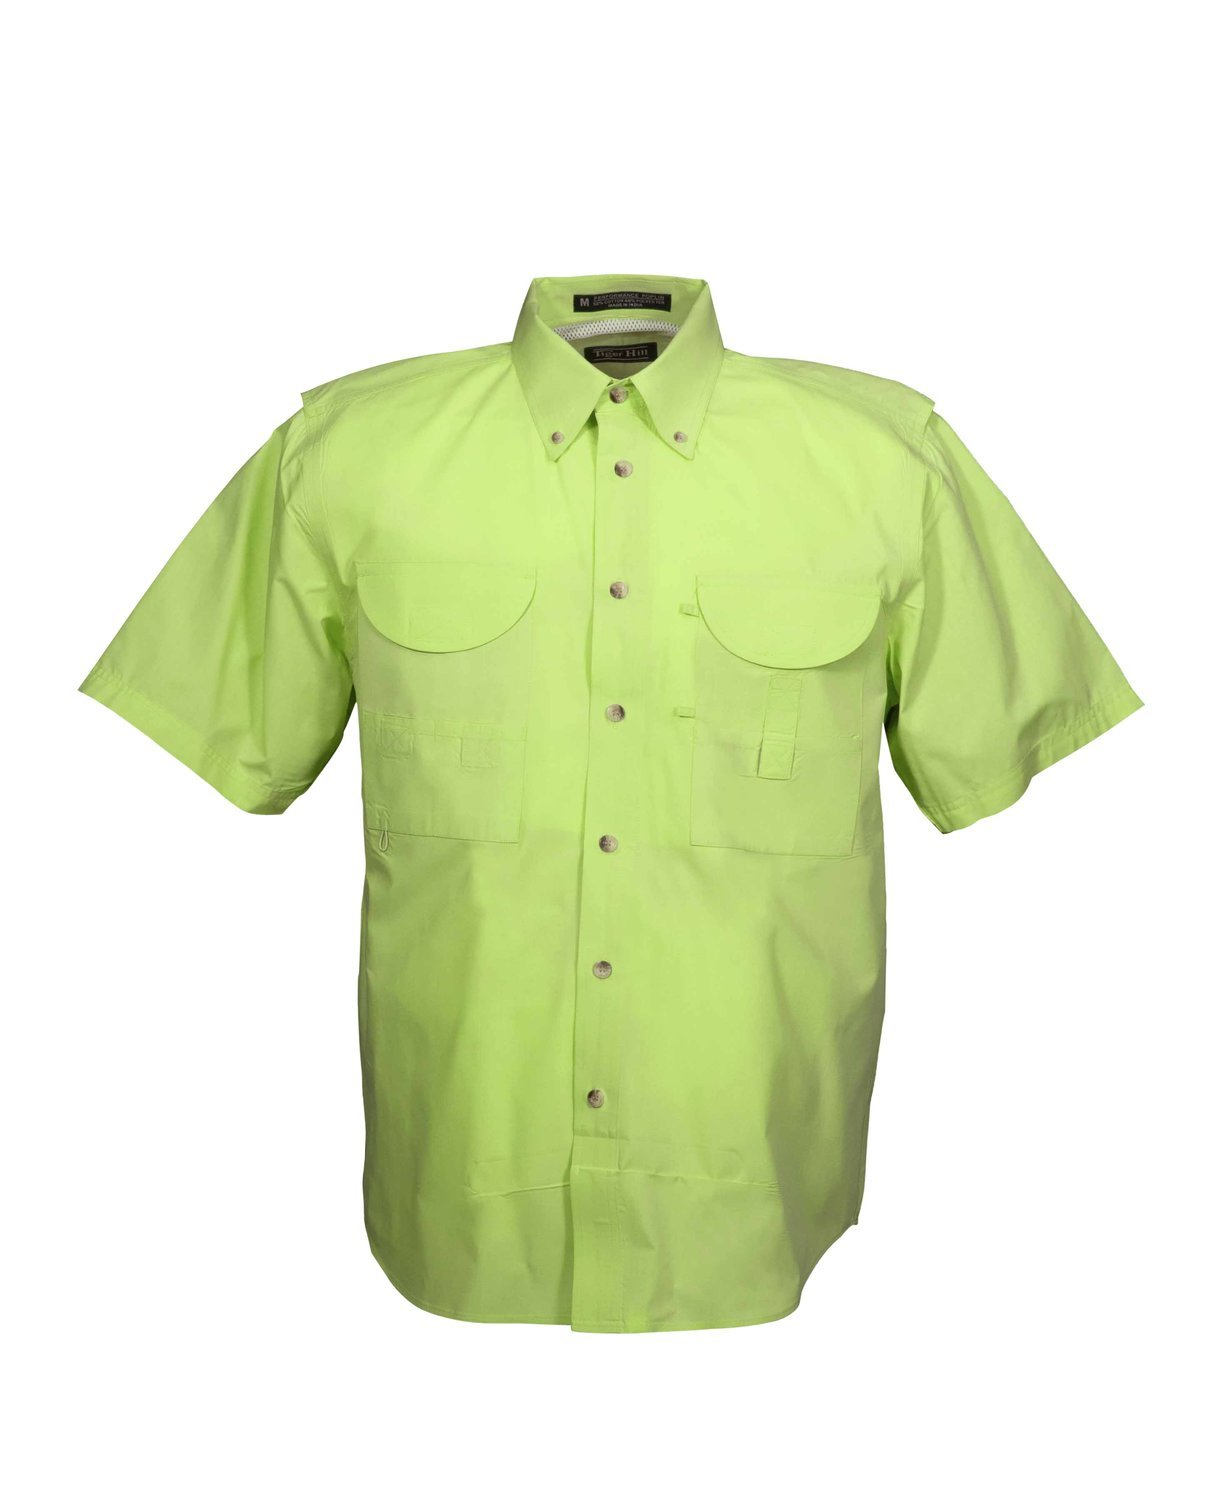 Tiger Hill Men's Fishing Shirt Short Sleeves Lime Green